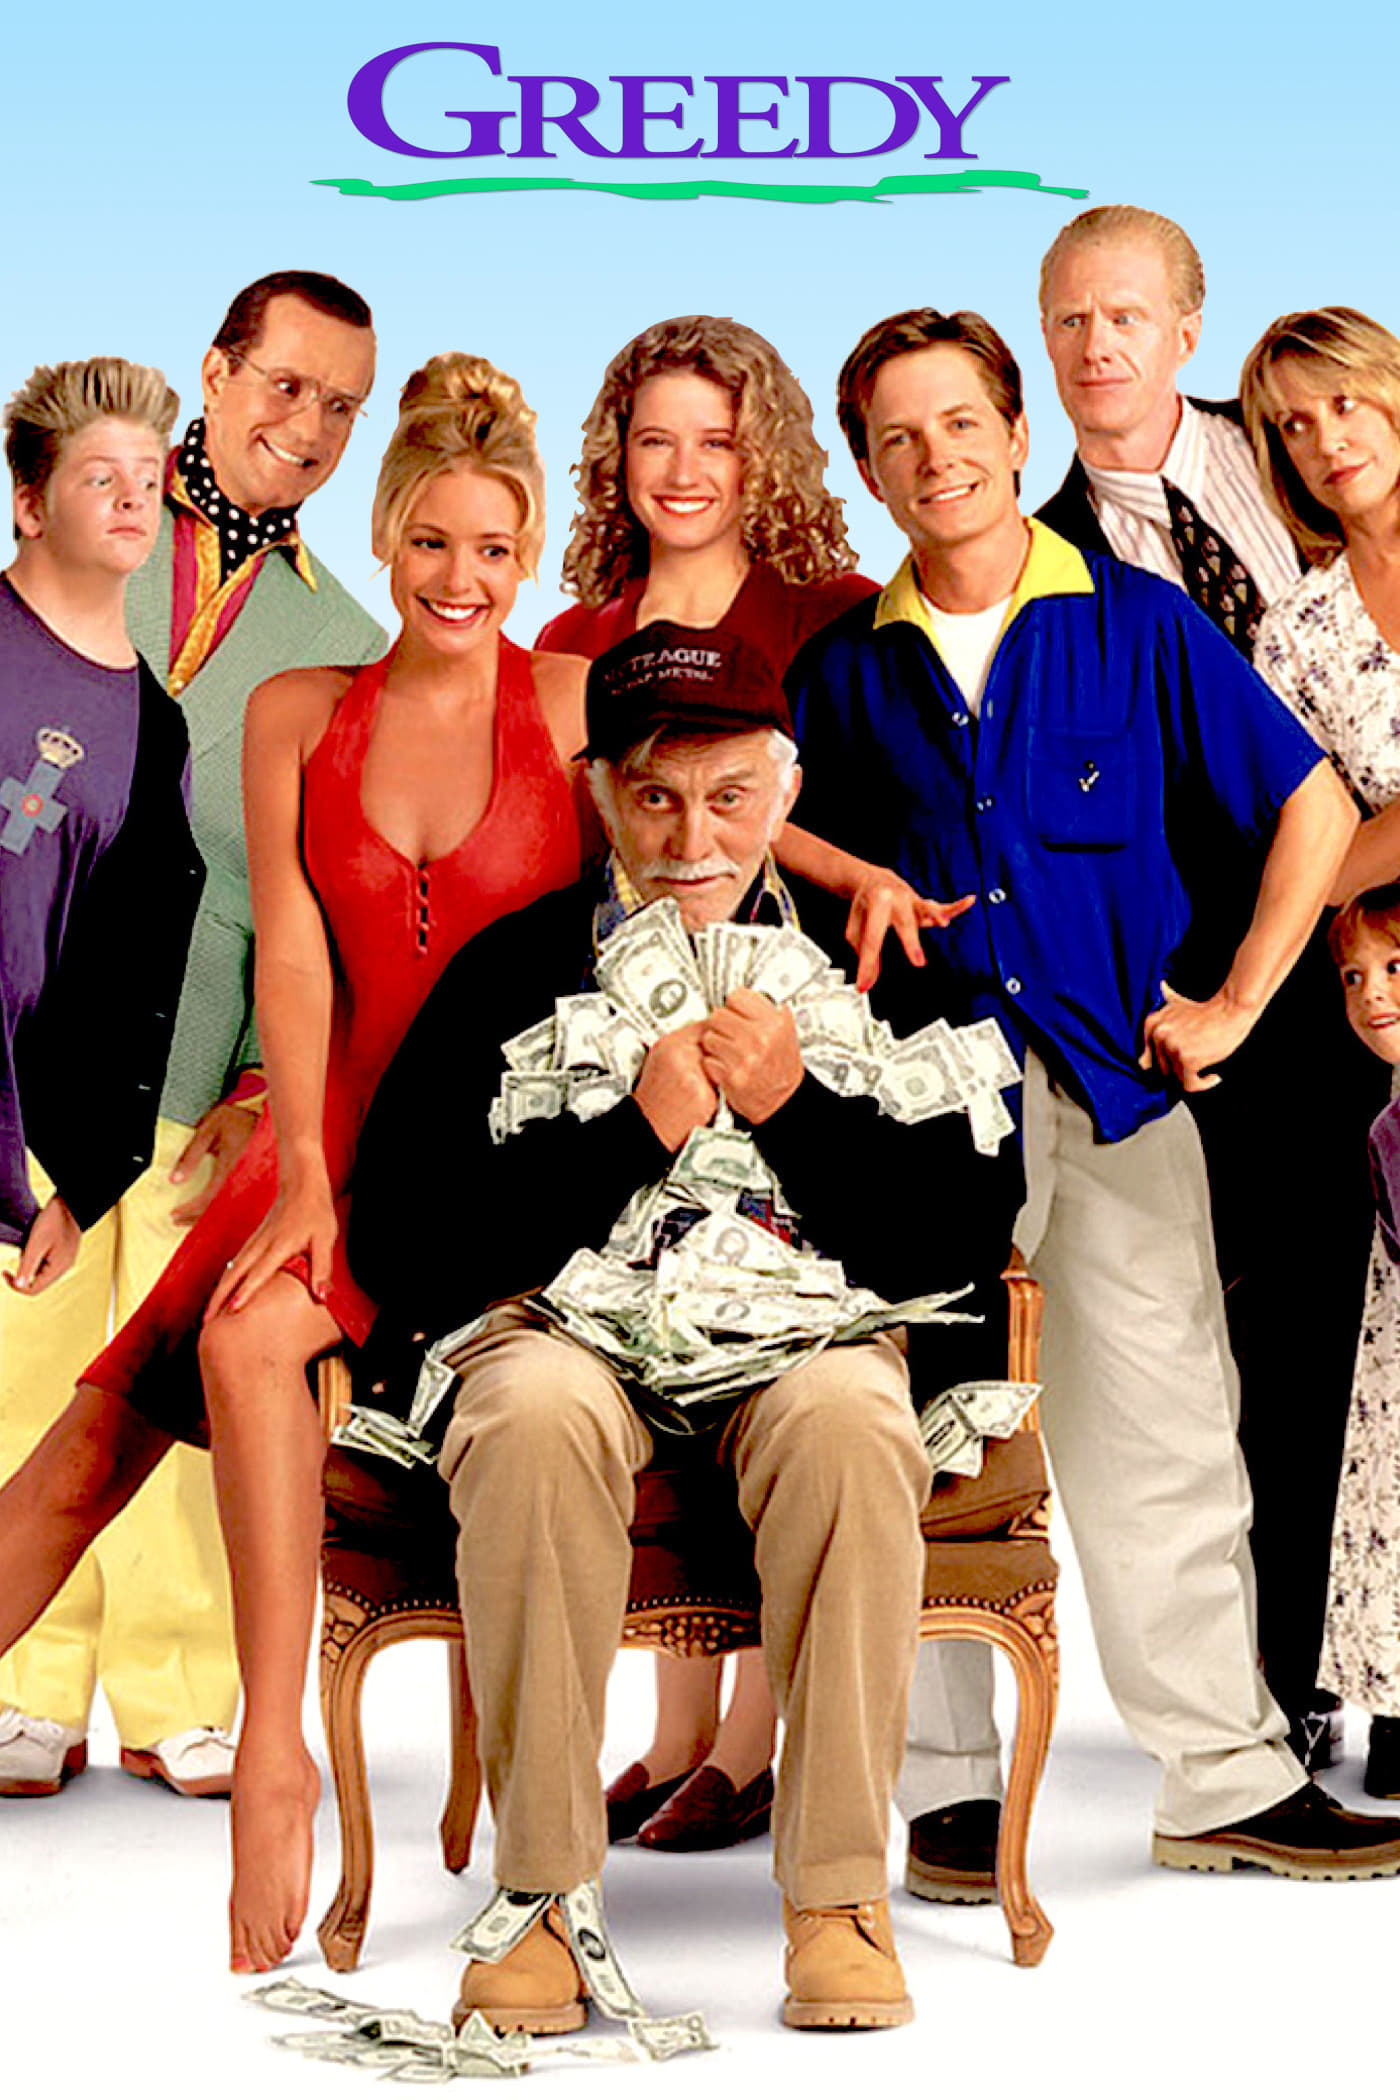 greedy Directed by jonathan lynn with michael j fox, kirk douglas, nancy travis, olivia d'abo uncle joe is ageing he's also a millionaire that's why his family is trying so very hard to get into his good books they all want a piece of his empire unfortunately uncle joe isn't as stupid as his family thinks he is he can see that his family is only nice to him because they want his money.